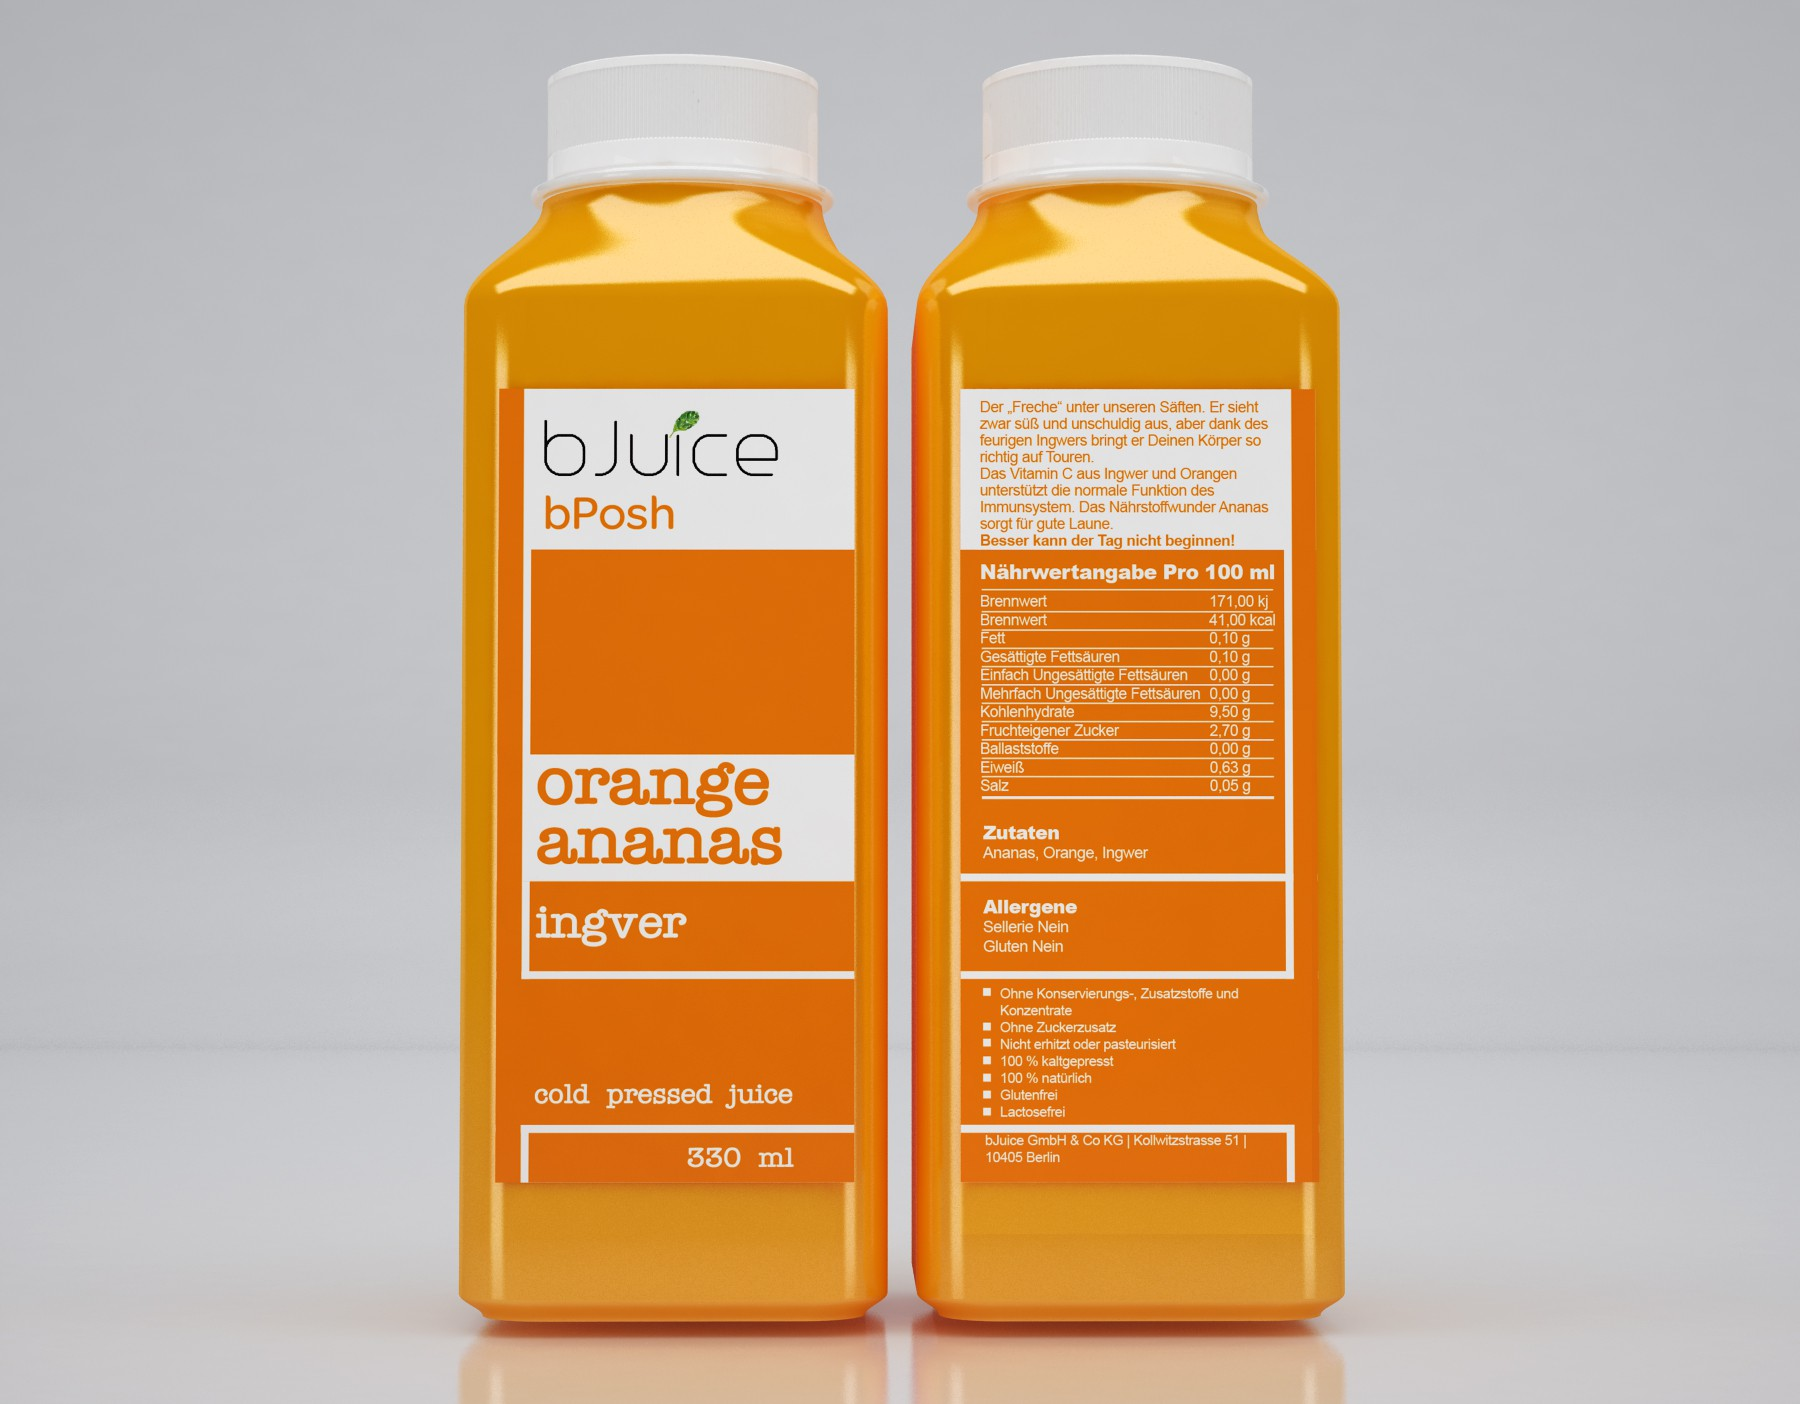 Create an edgy and smart label for bJuice bottles